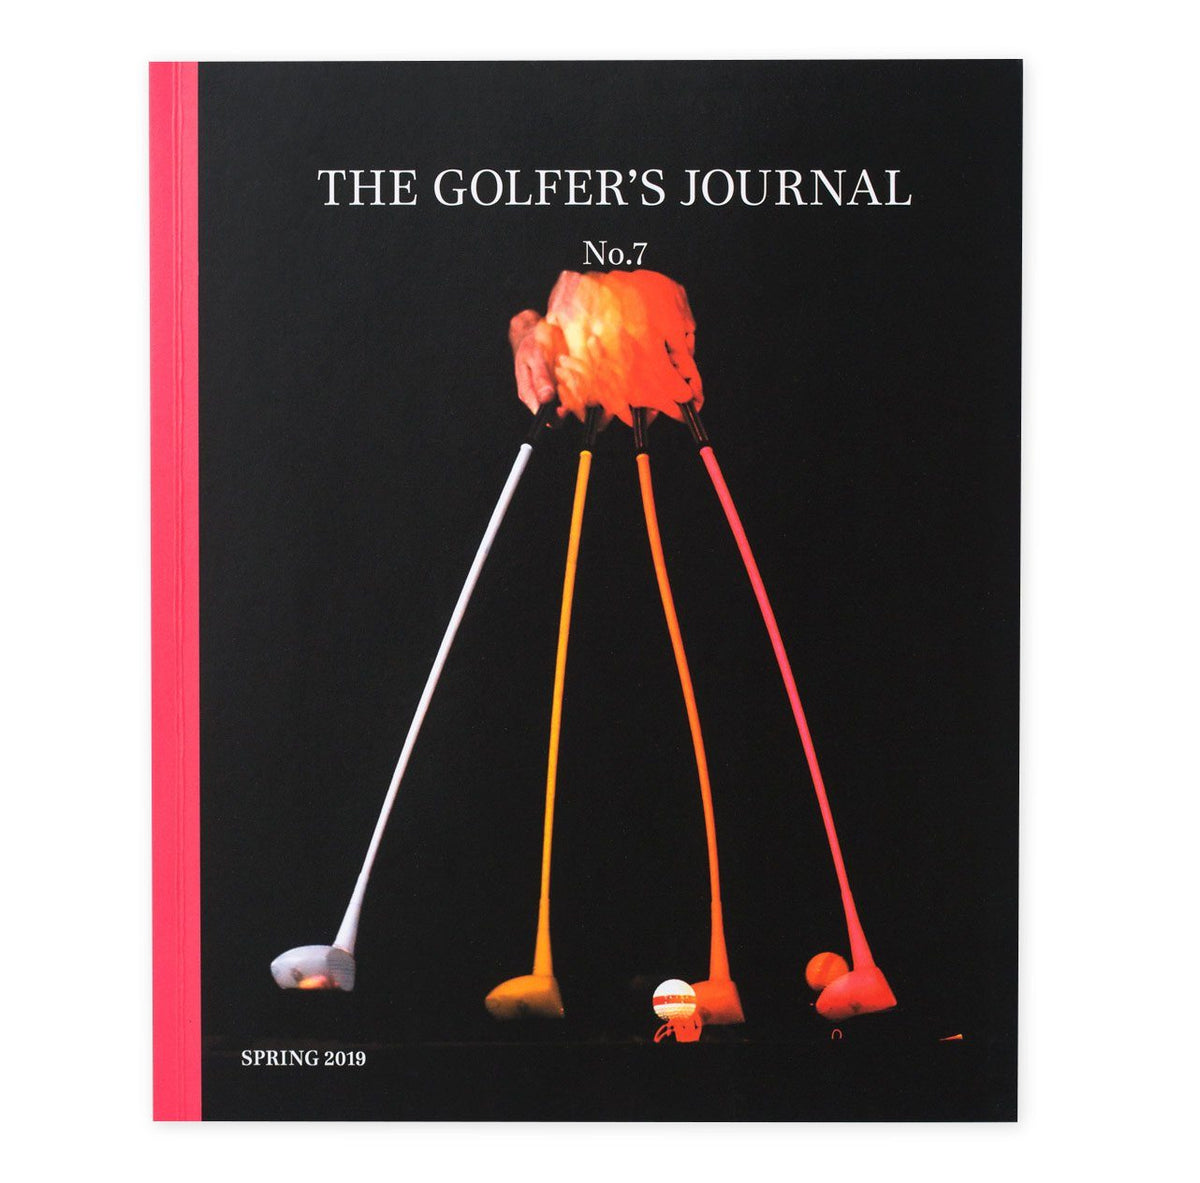 The Golfer's Journal #7